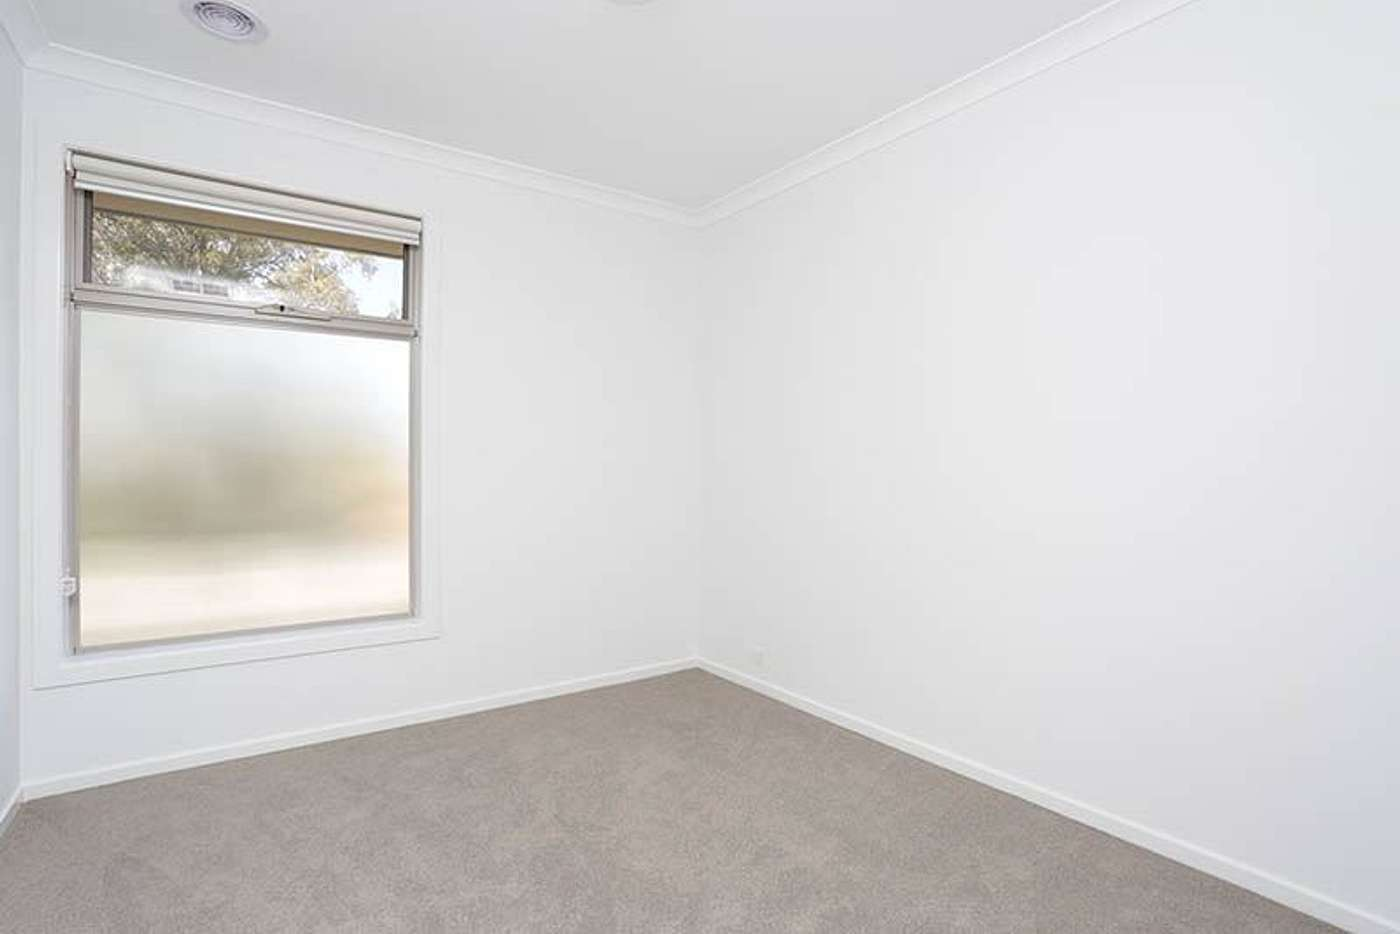 Seventh view of Homely unit listing, 2/48 Headingley Road, Mount Waverley VIC 3149